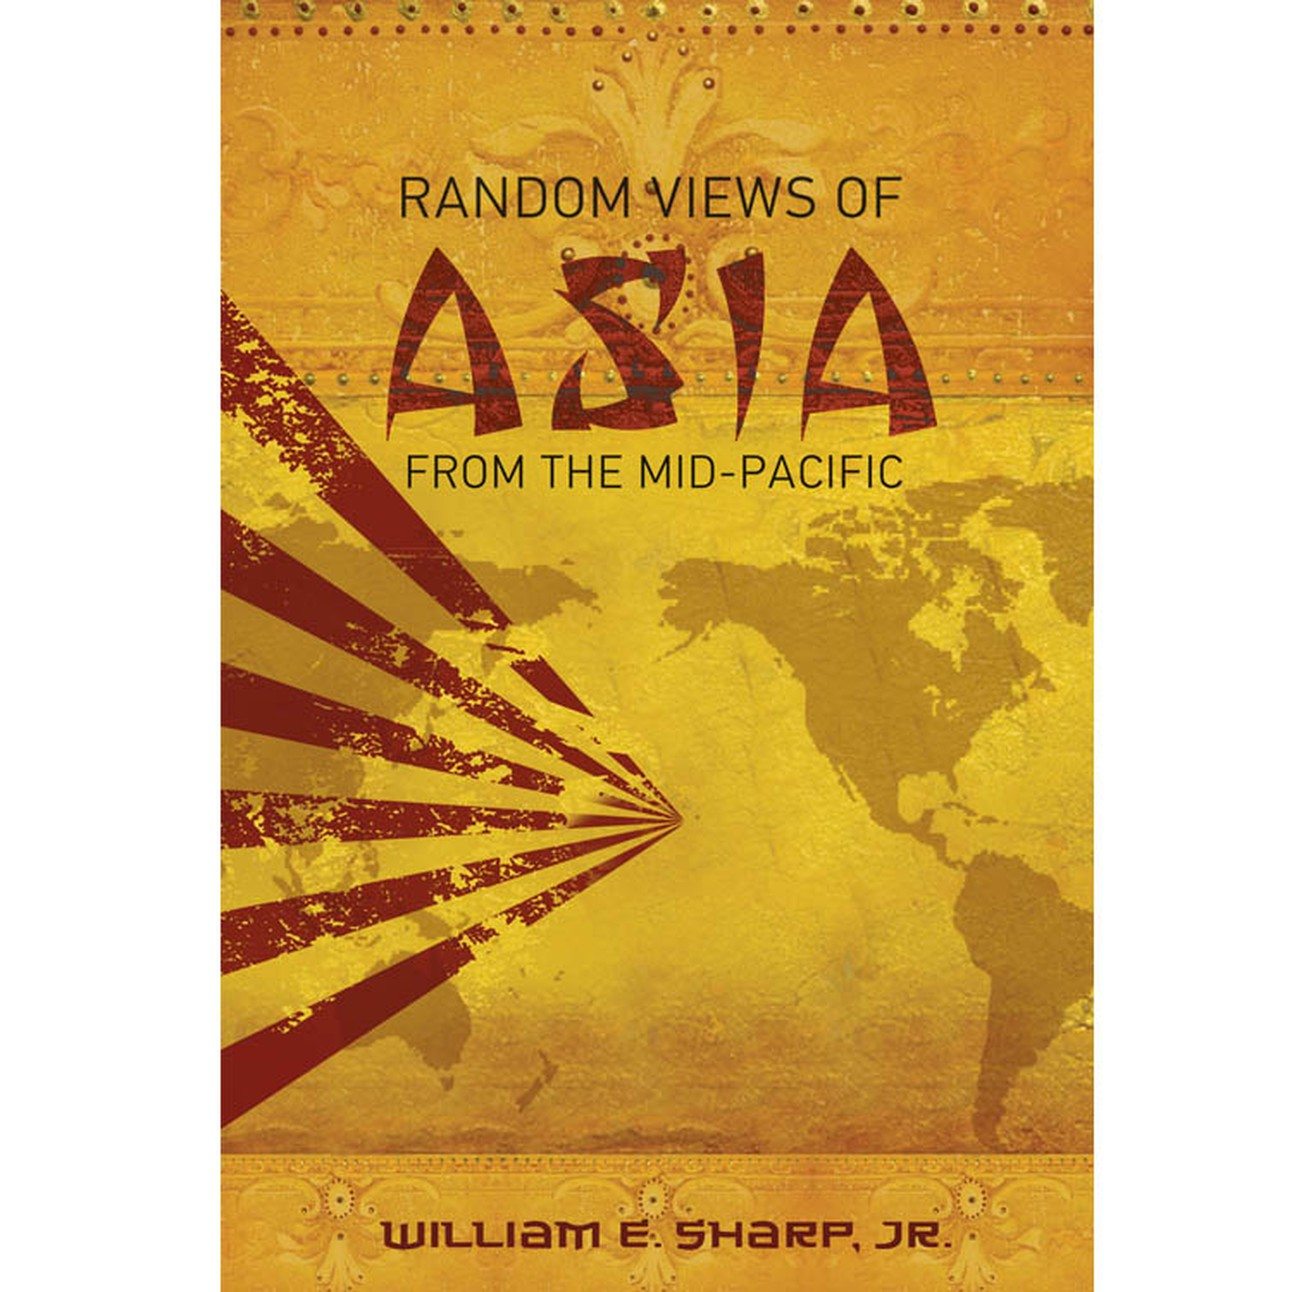 Random Views of Asia from the Mid-Pacific